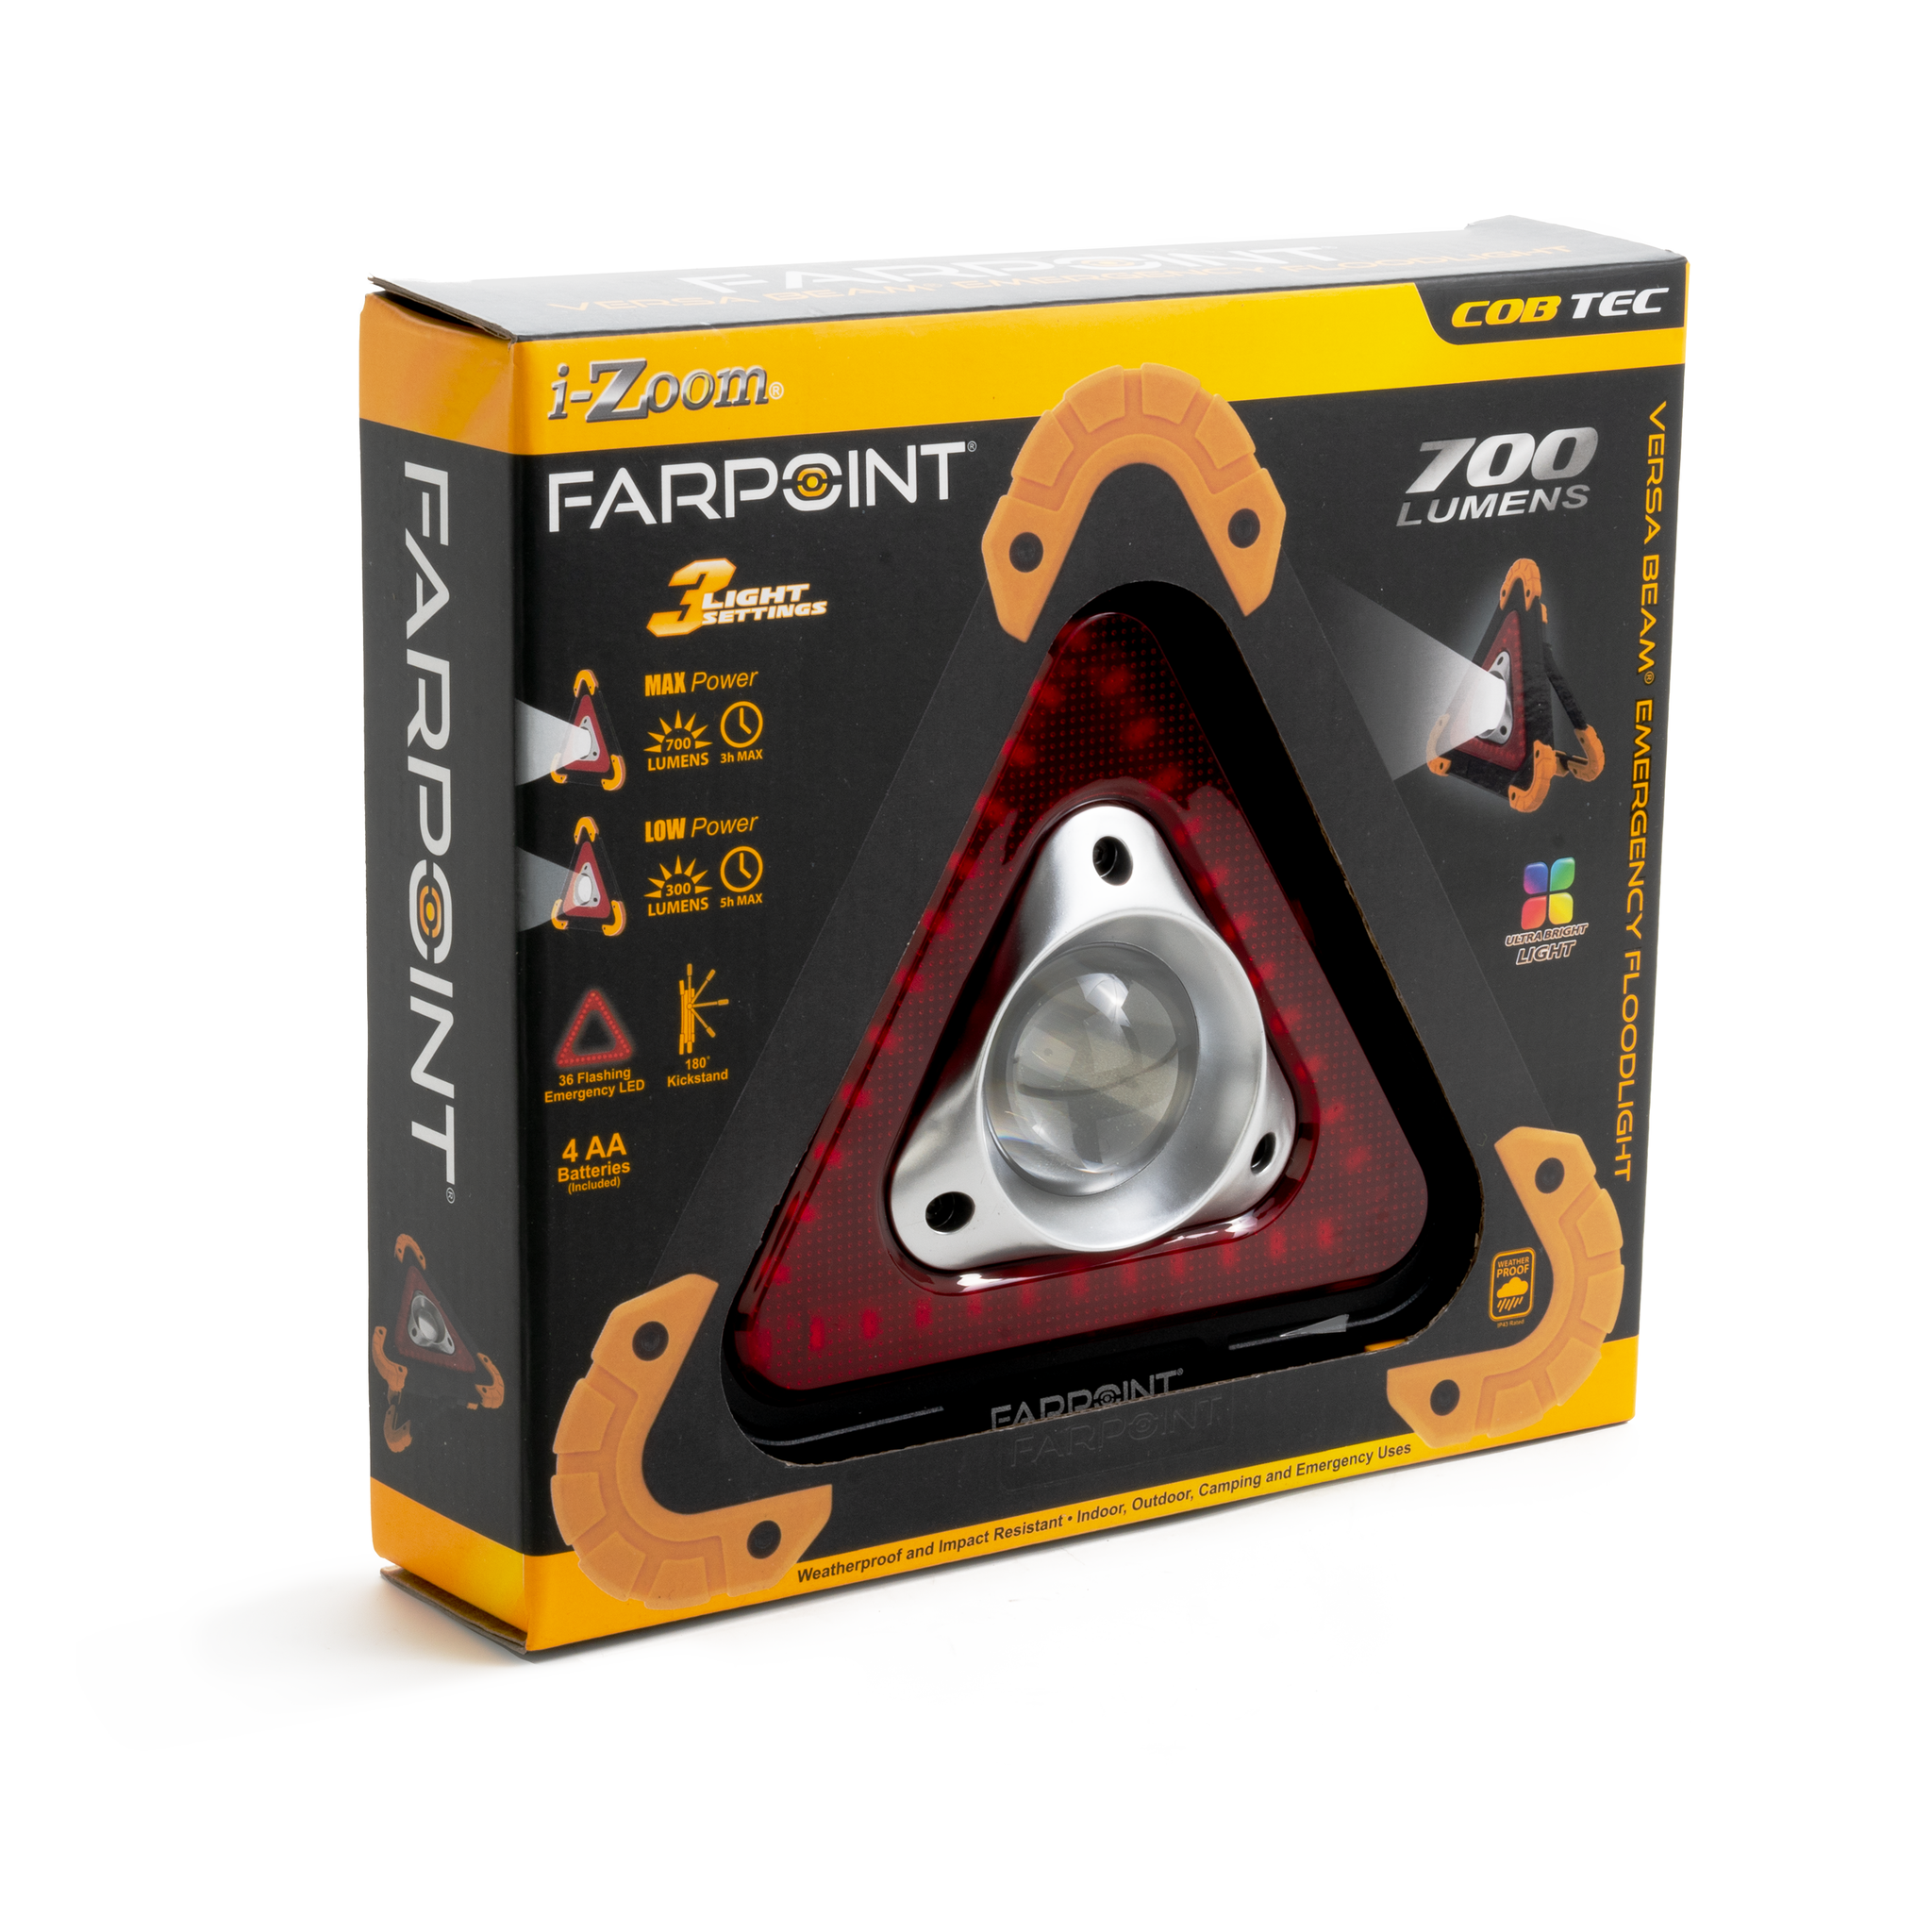 Farpoint® 700 Lumens Roadside Emergency Floodlight (6 pc DISPLAY)